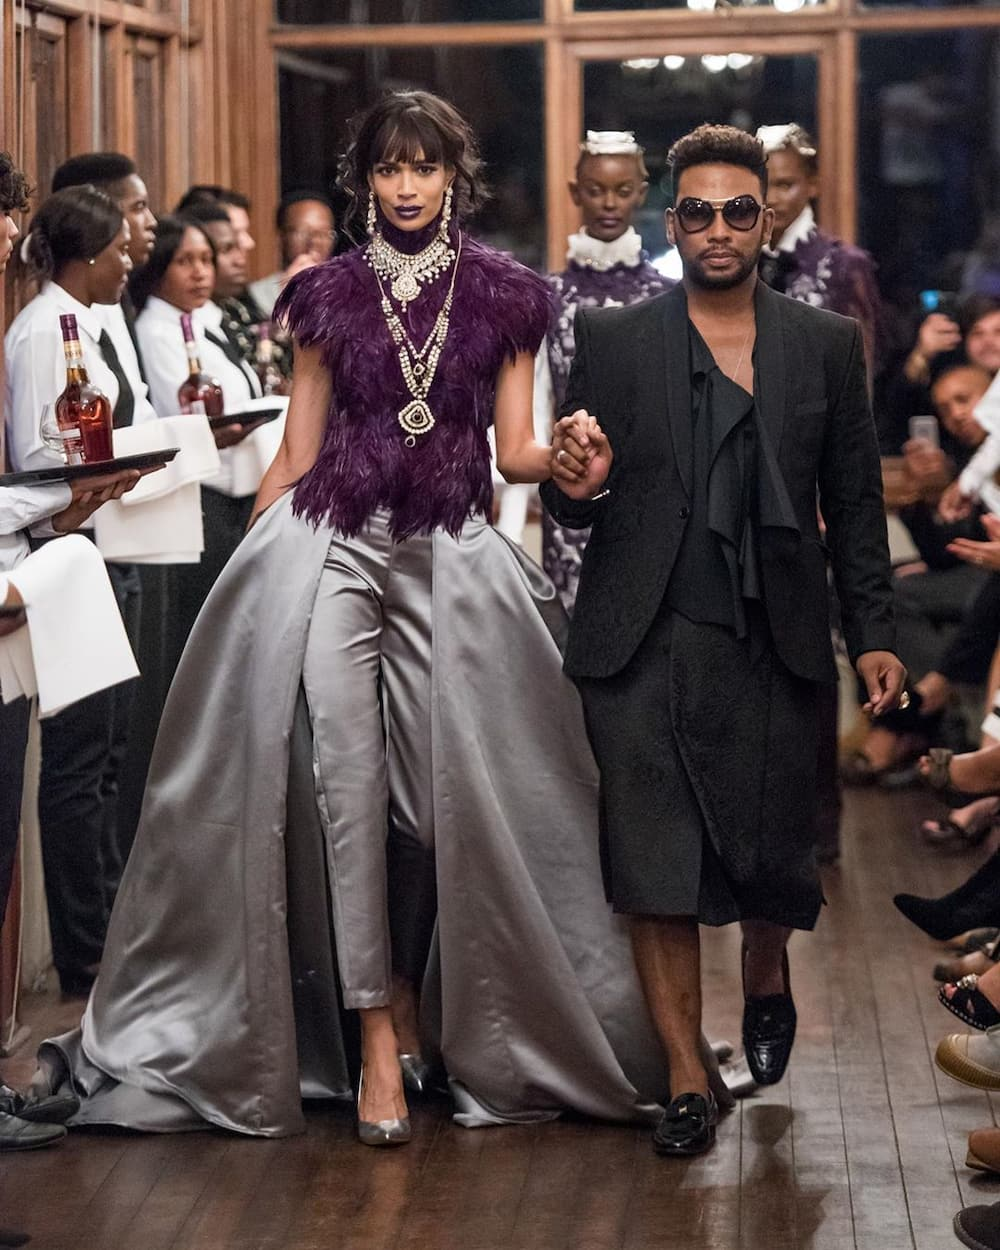 David Tlale biography: age, place of birth, partner, married, mother, designs and net worth